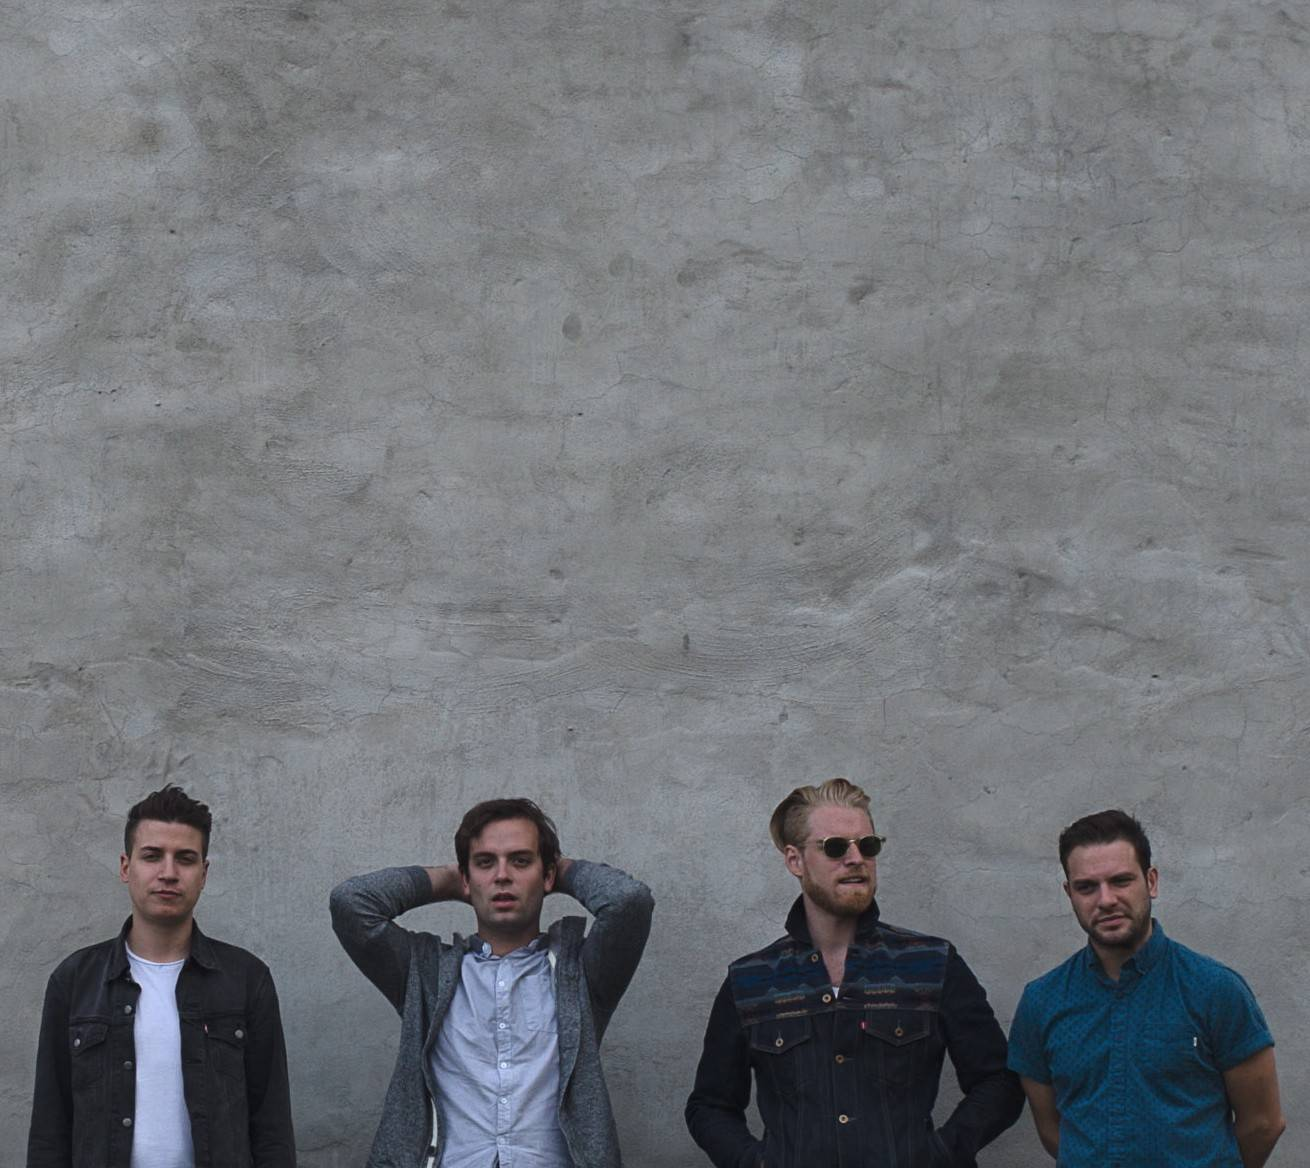 Local Gemini Club brings mix of rock, electronica to Lolla stage